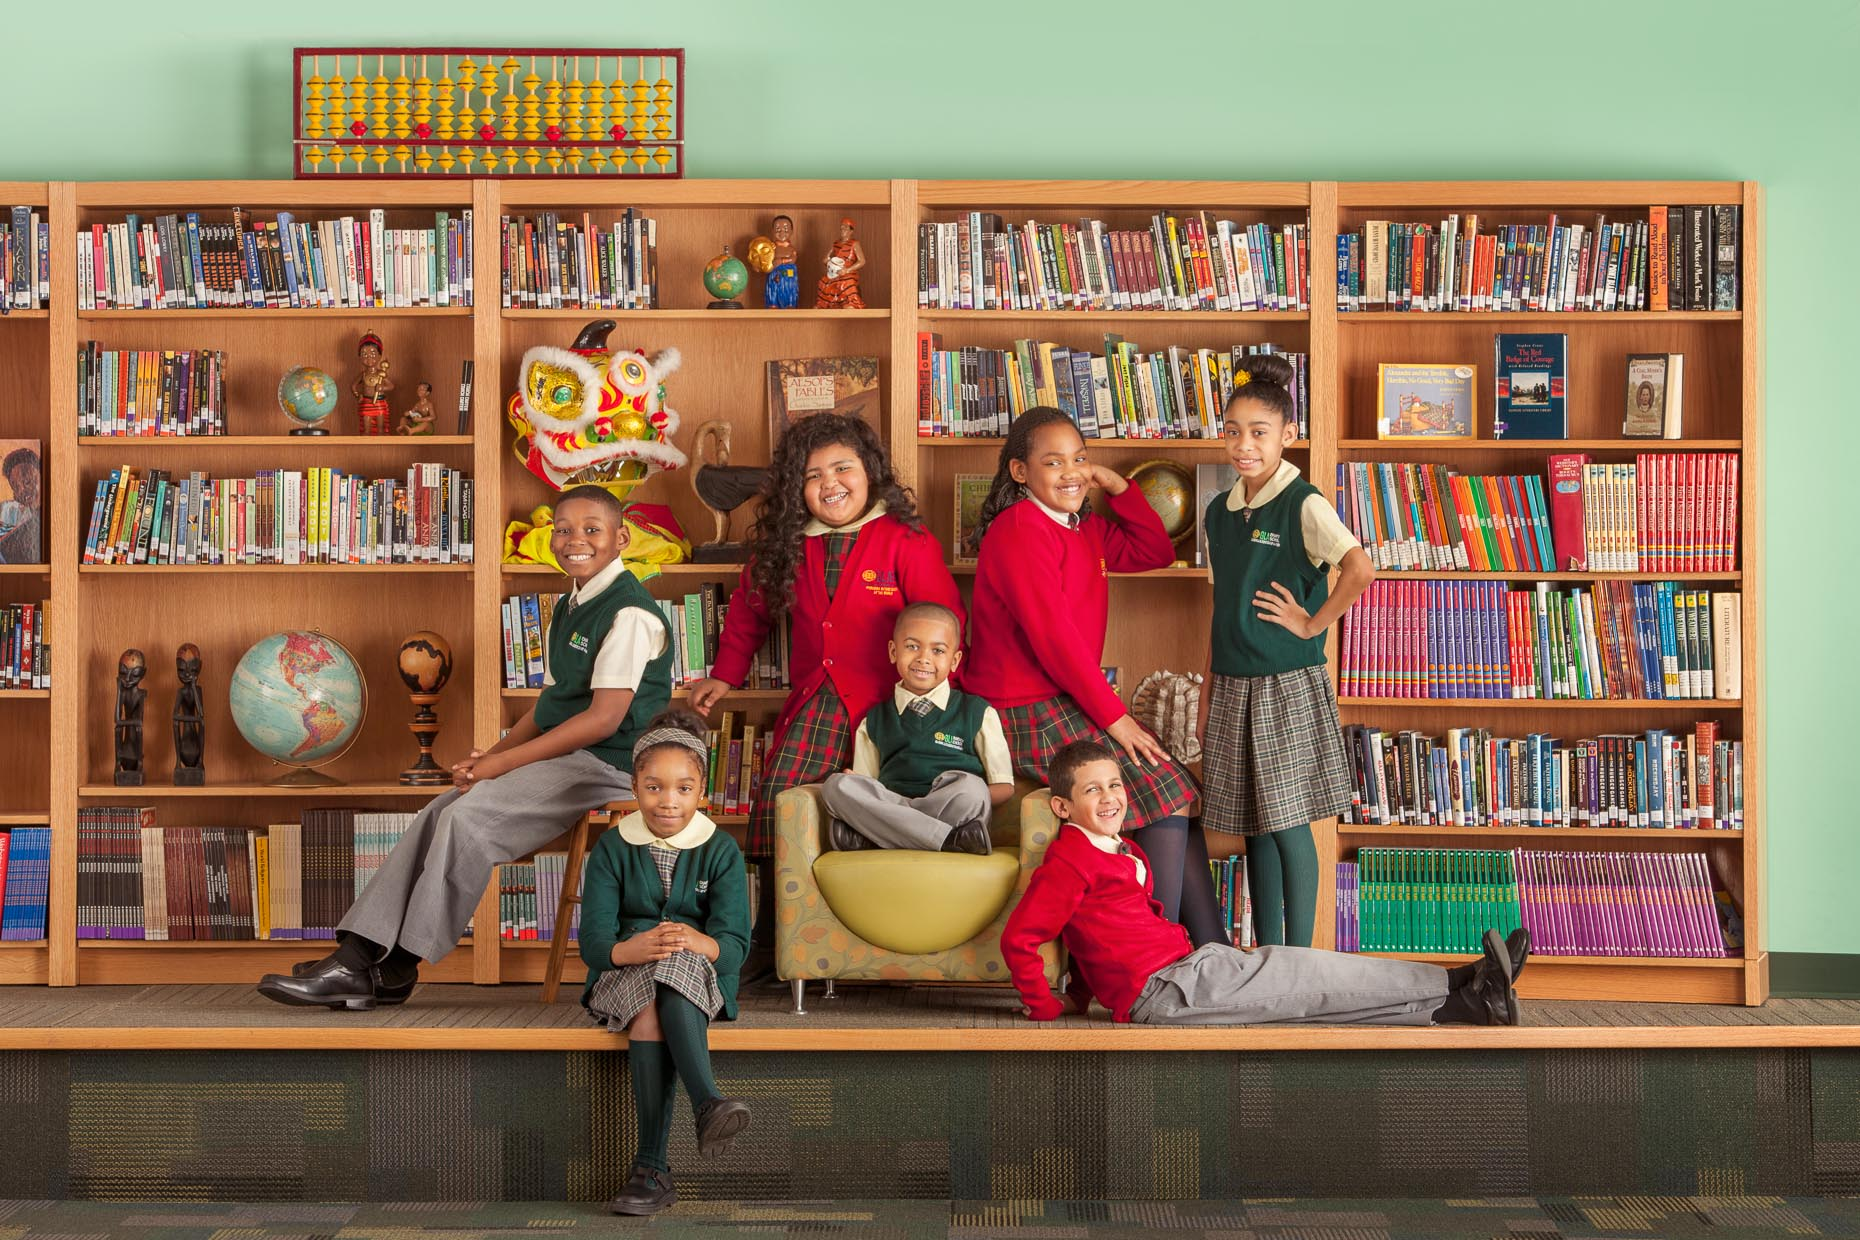 commercial-education-students-group-bookcase